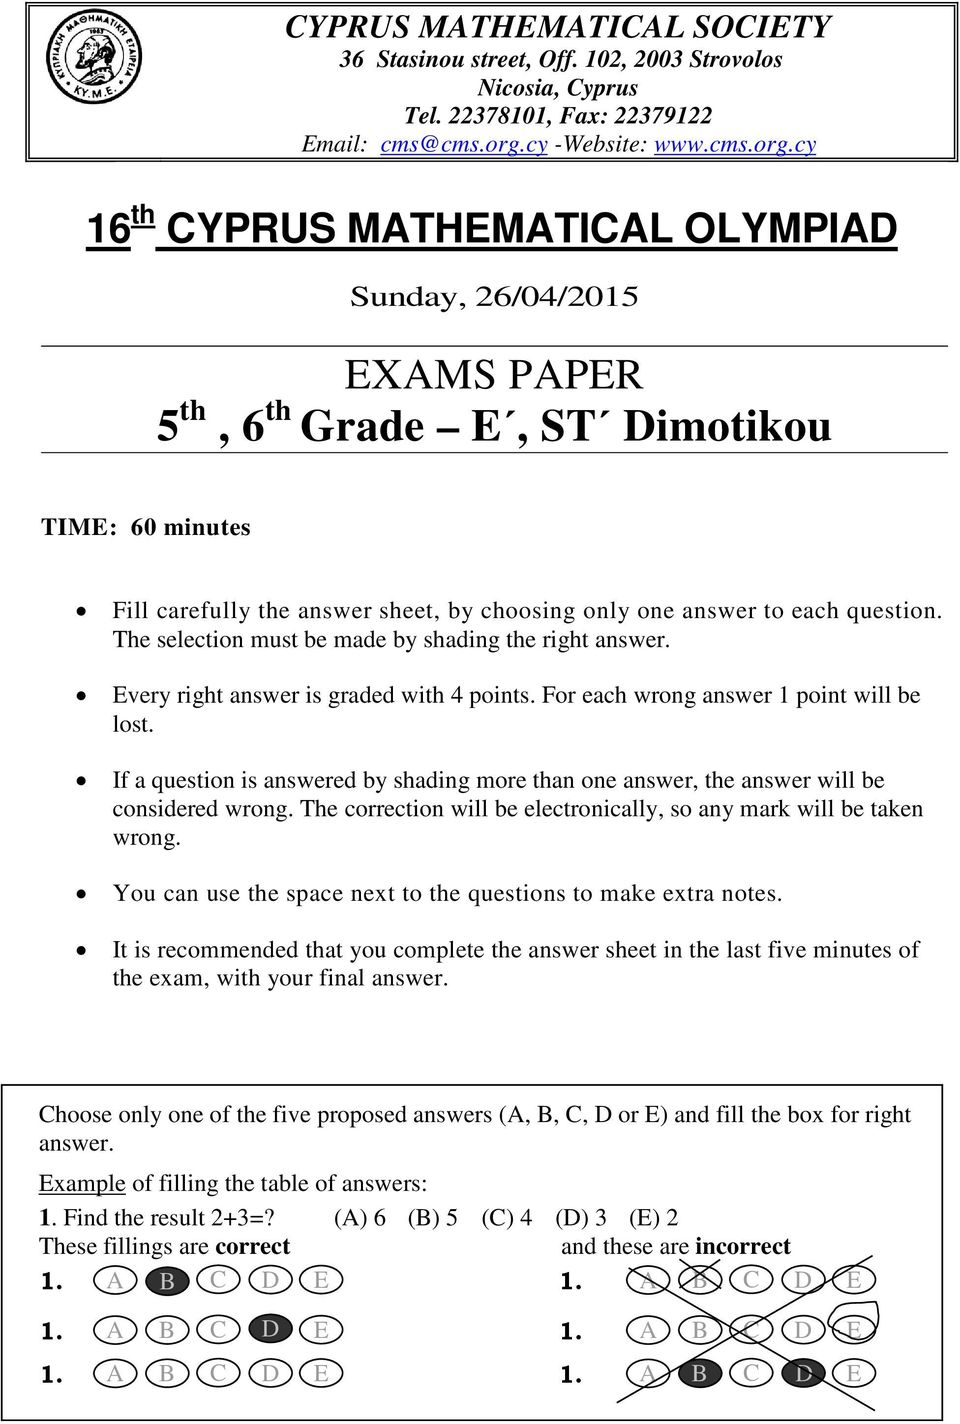 cy 16 th CYPRUS MATHEMATICAL OLYMPIAD Sunday, 26/04/2015 EXAMS PAPER 5 th, 6 th Grade E, ST Dimotikou TIME: 60 minutes Fill carefully the answer sheet, by choosing only one answer to each question.